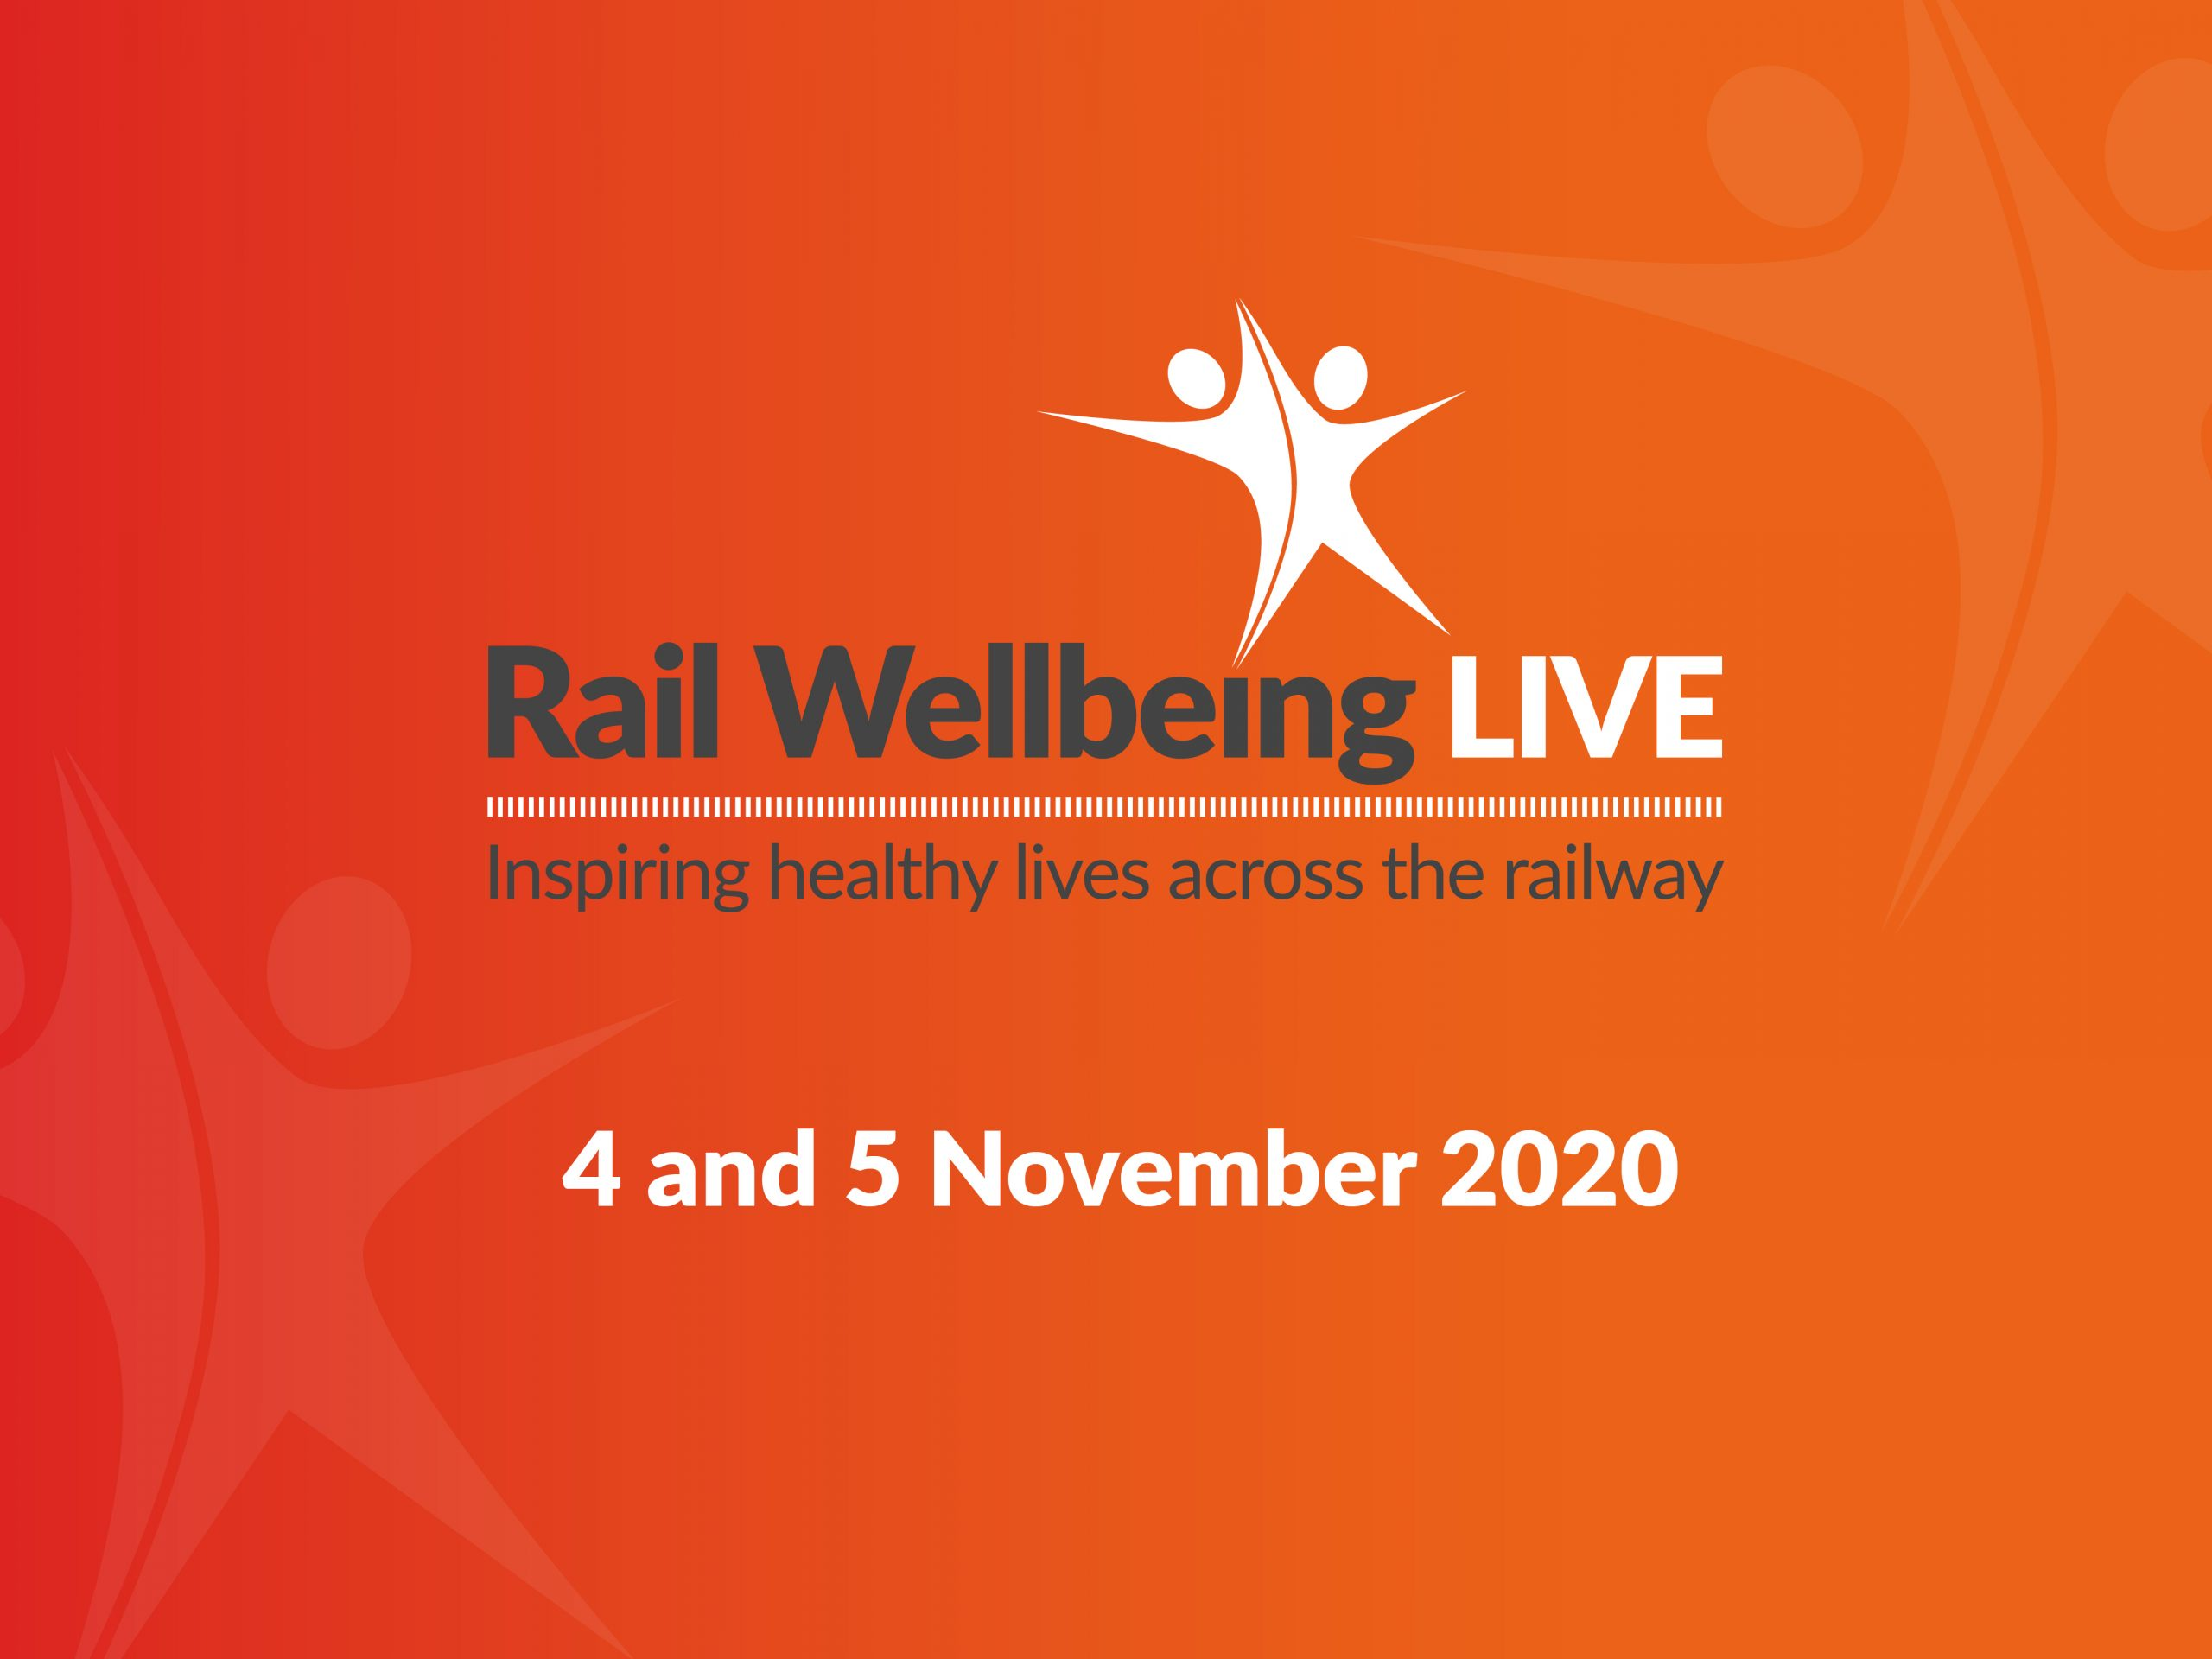 Rail Wellbeing Live